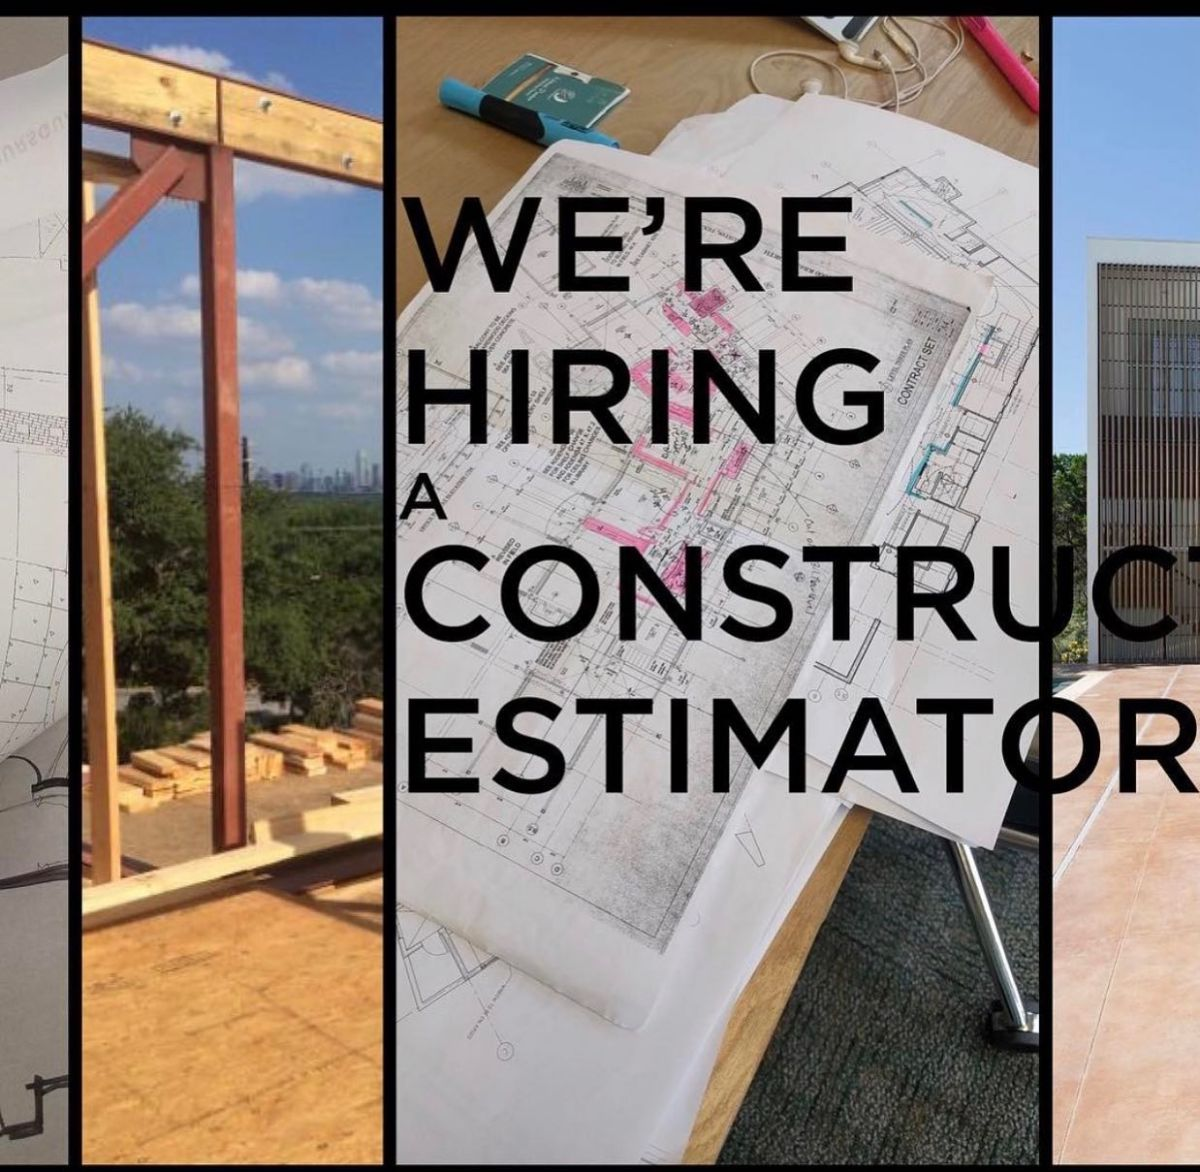 We're in search for a great team member who's dedicated to the craft of construction estimating. If you or someone you know is looking to work on challenging architecturally significant projects then please contact us.